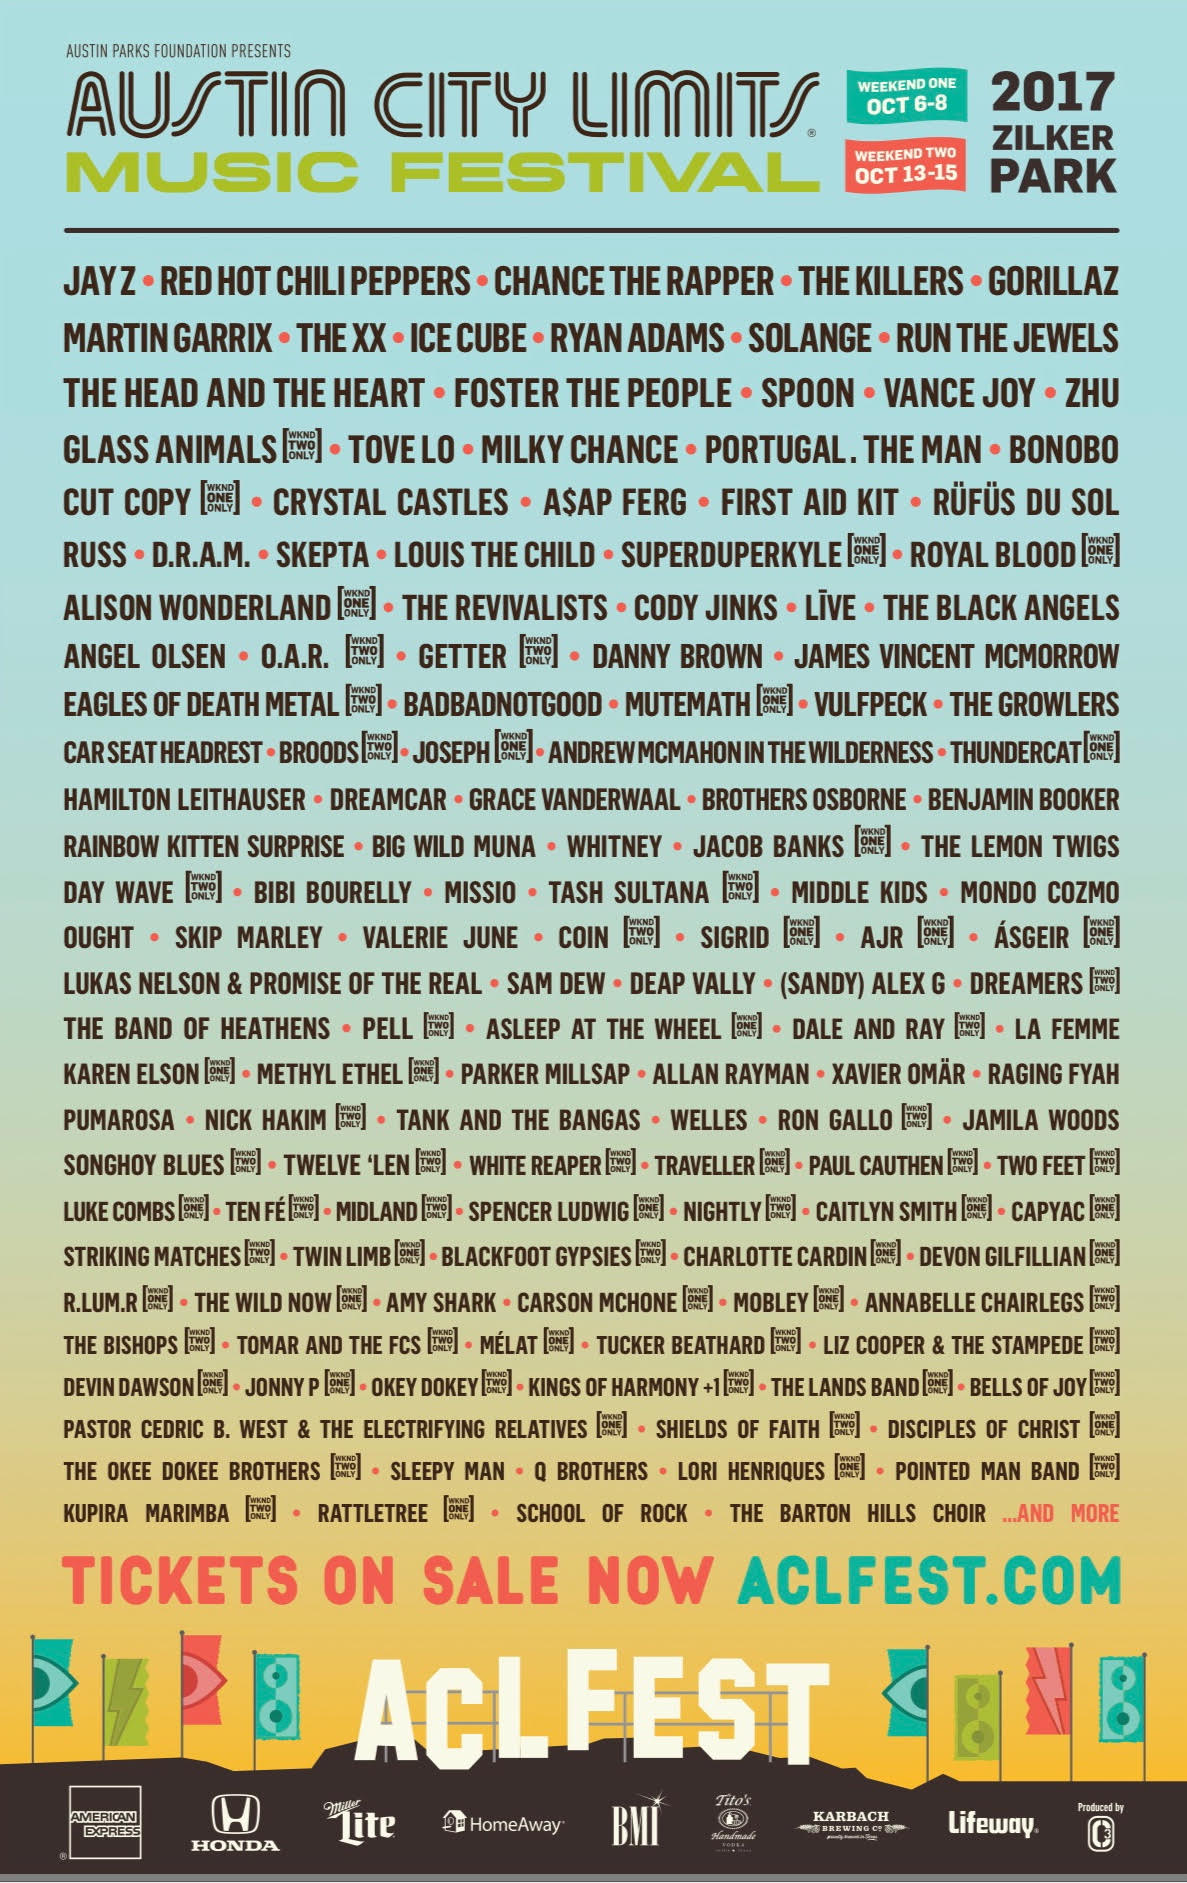 Lineup at Austin City Limits Festival 2017